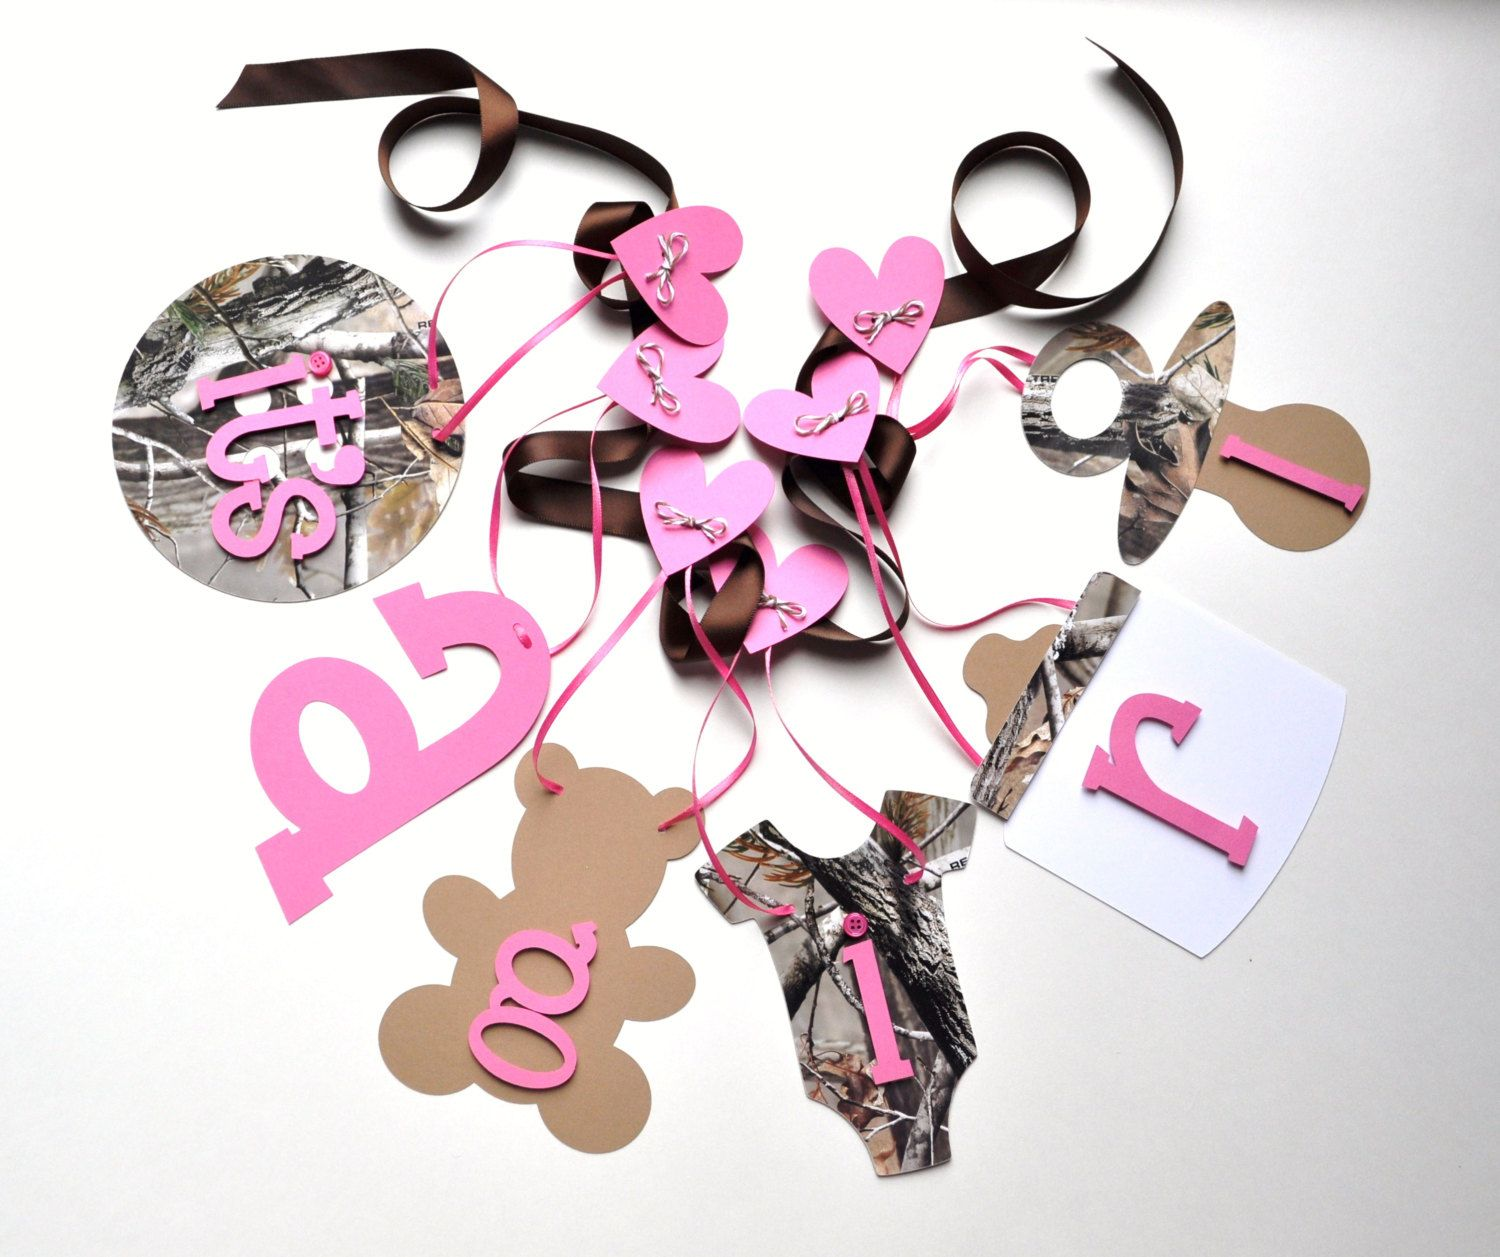 Delightful Realtree Camo Baby Shower Decorations Pink And Brown Itu0027s A Girl Banner By  ParkersPrints On Etsy